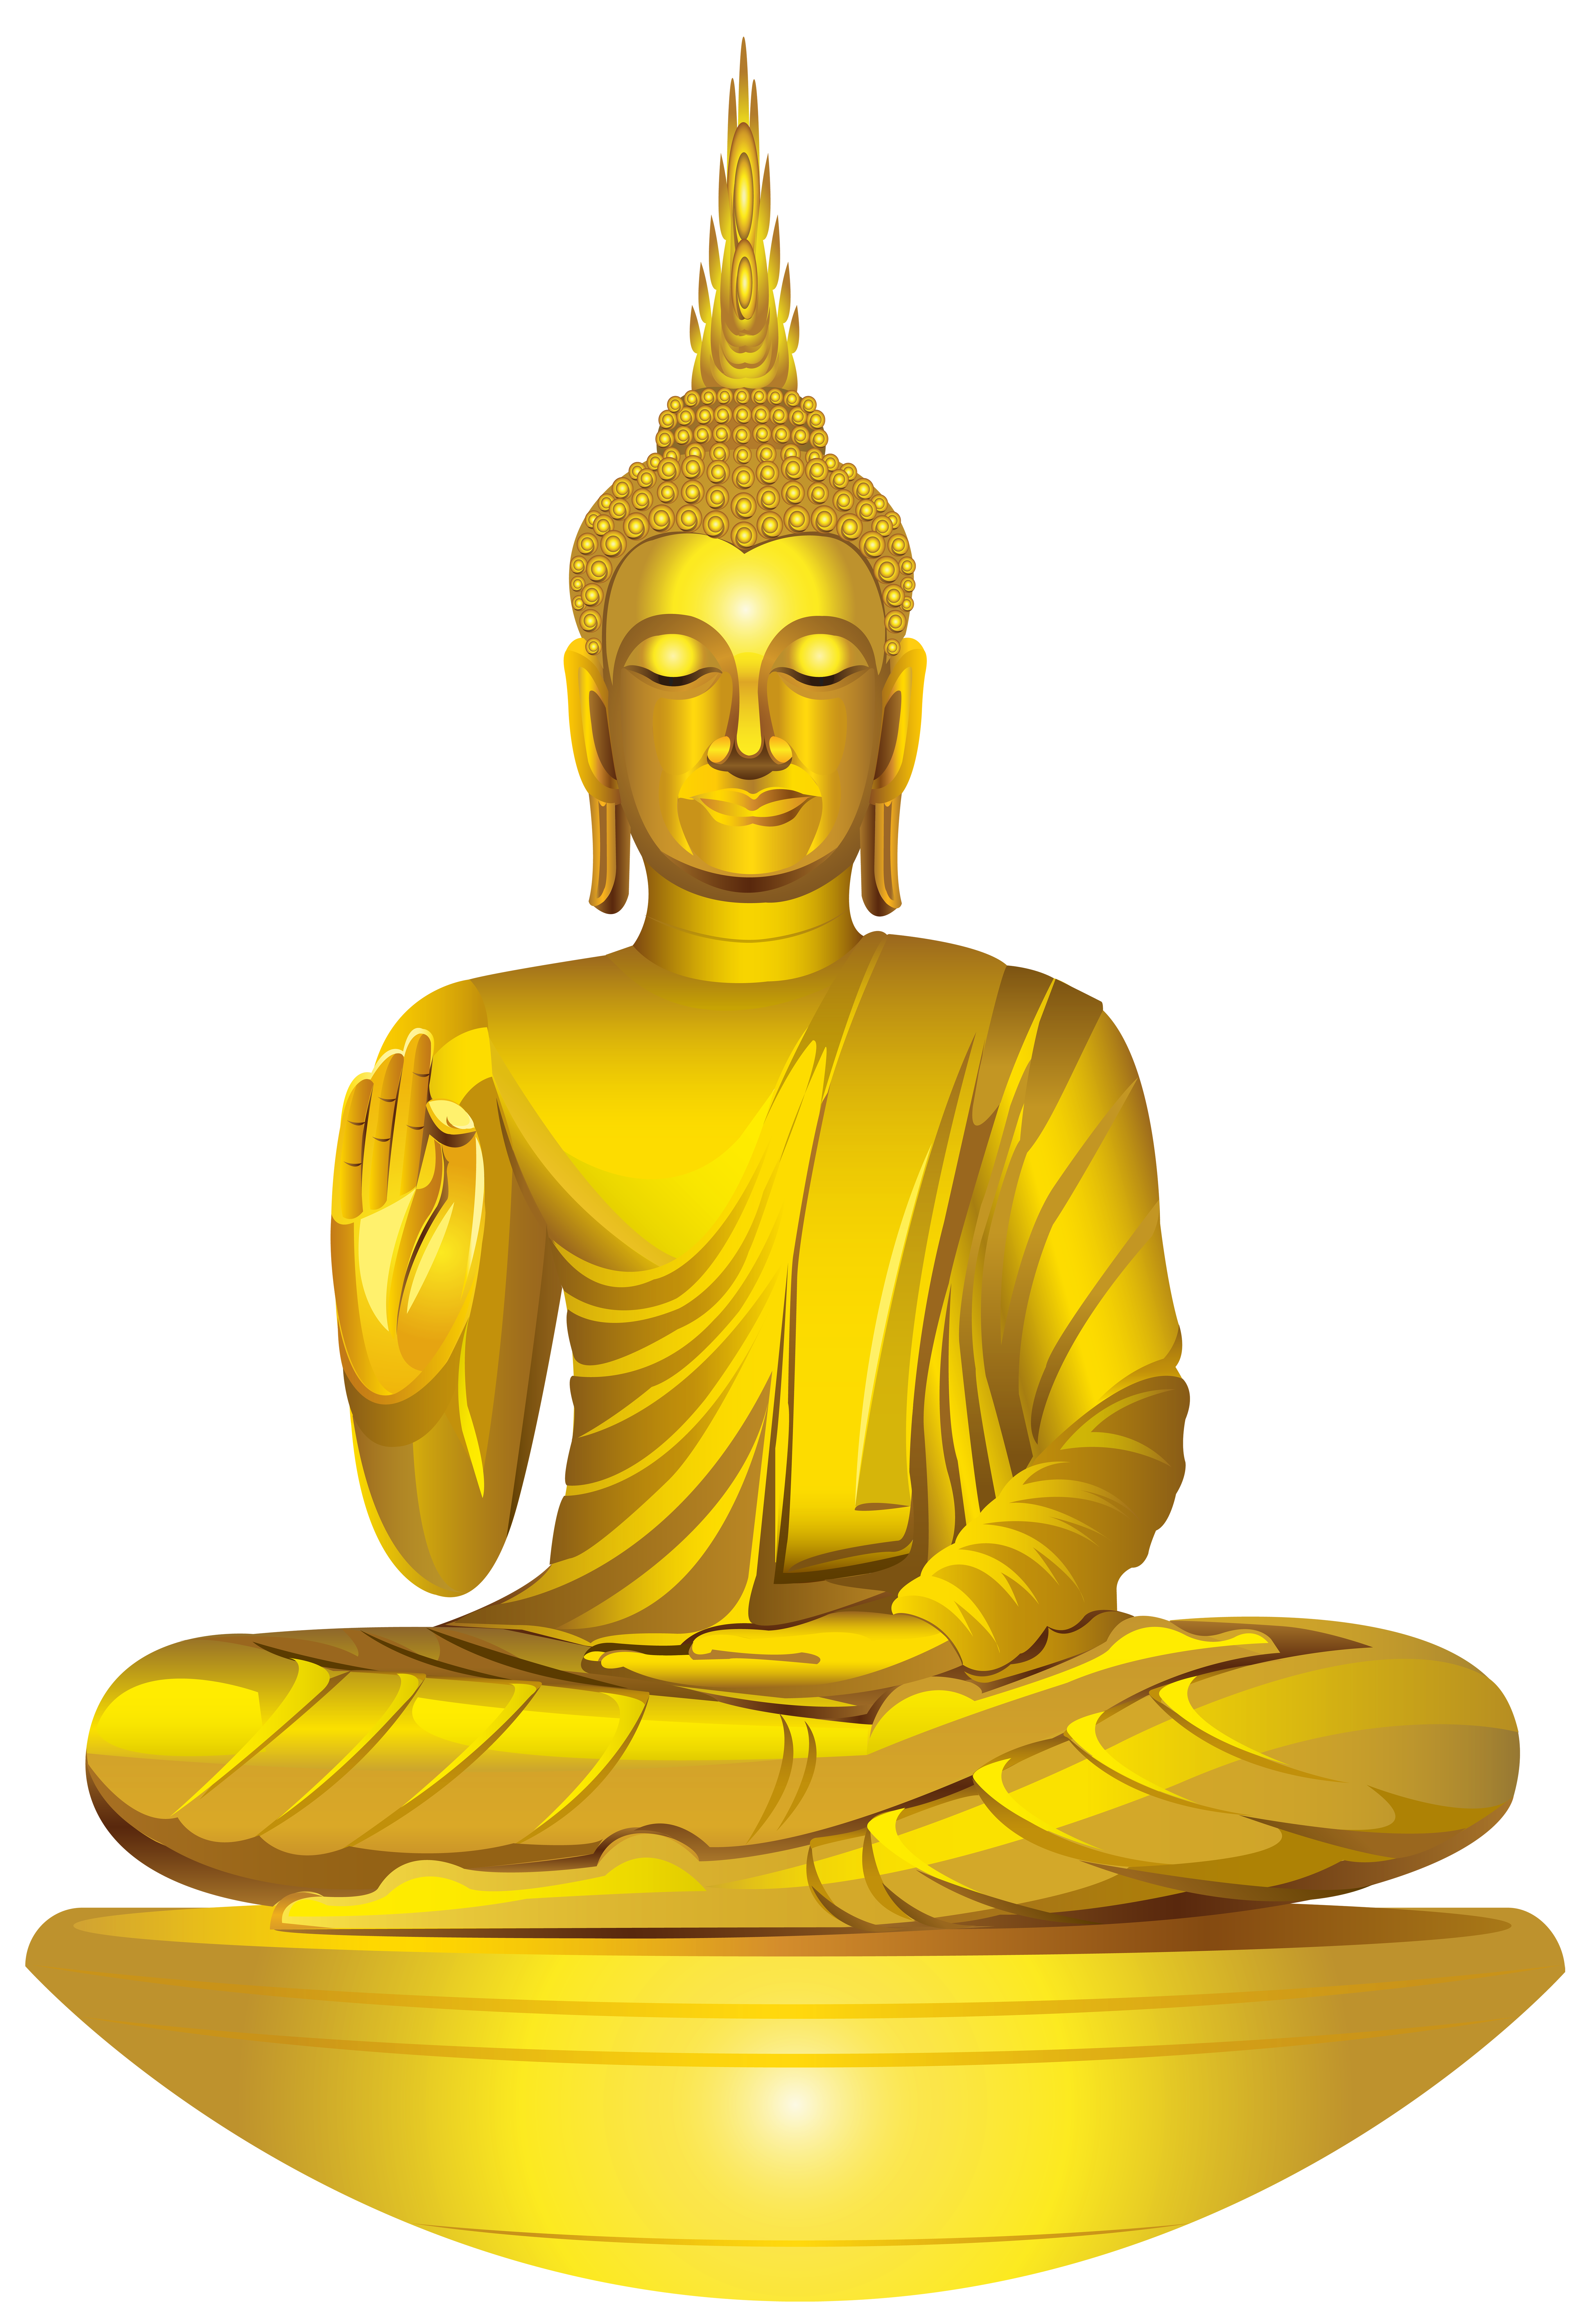 buddha clipart buddha statue pencil and color buddha #21120